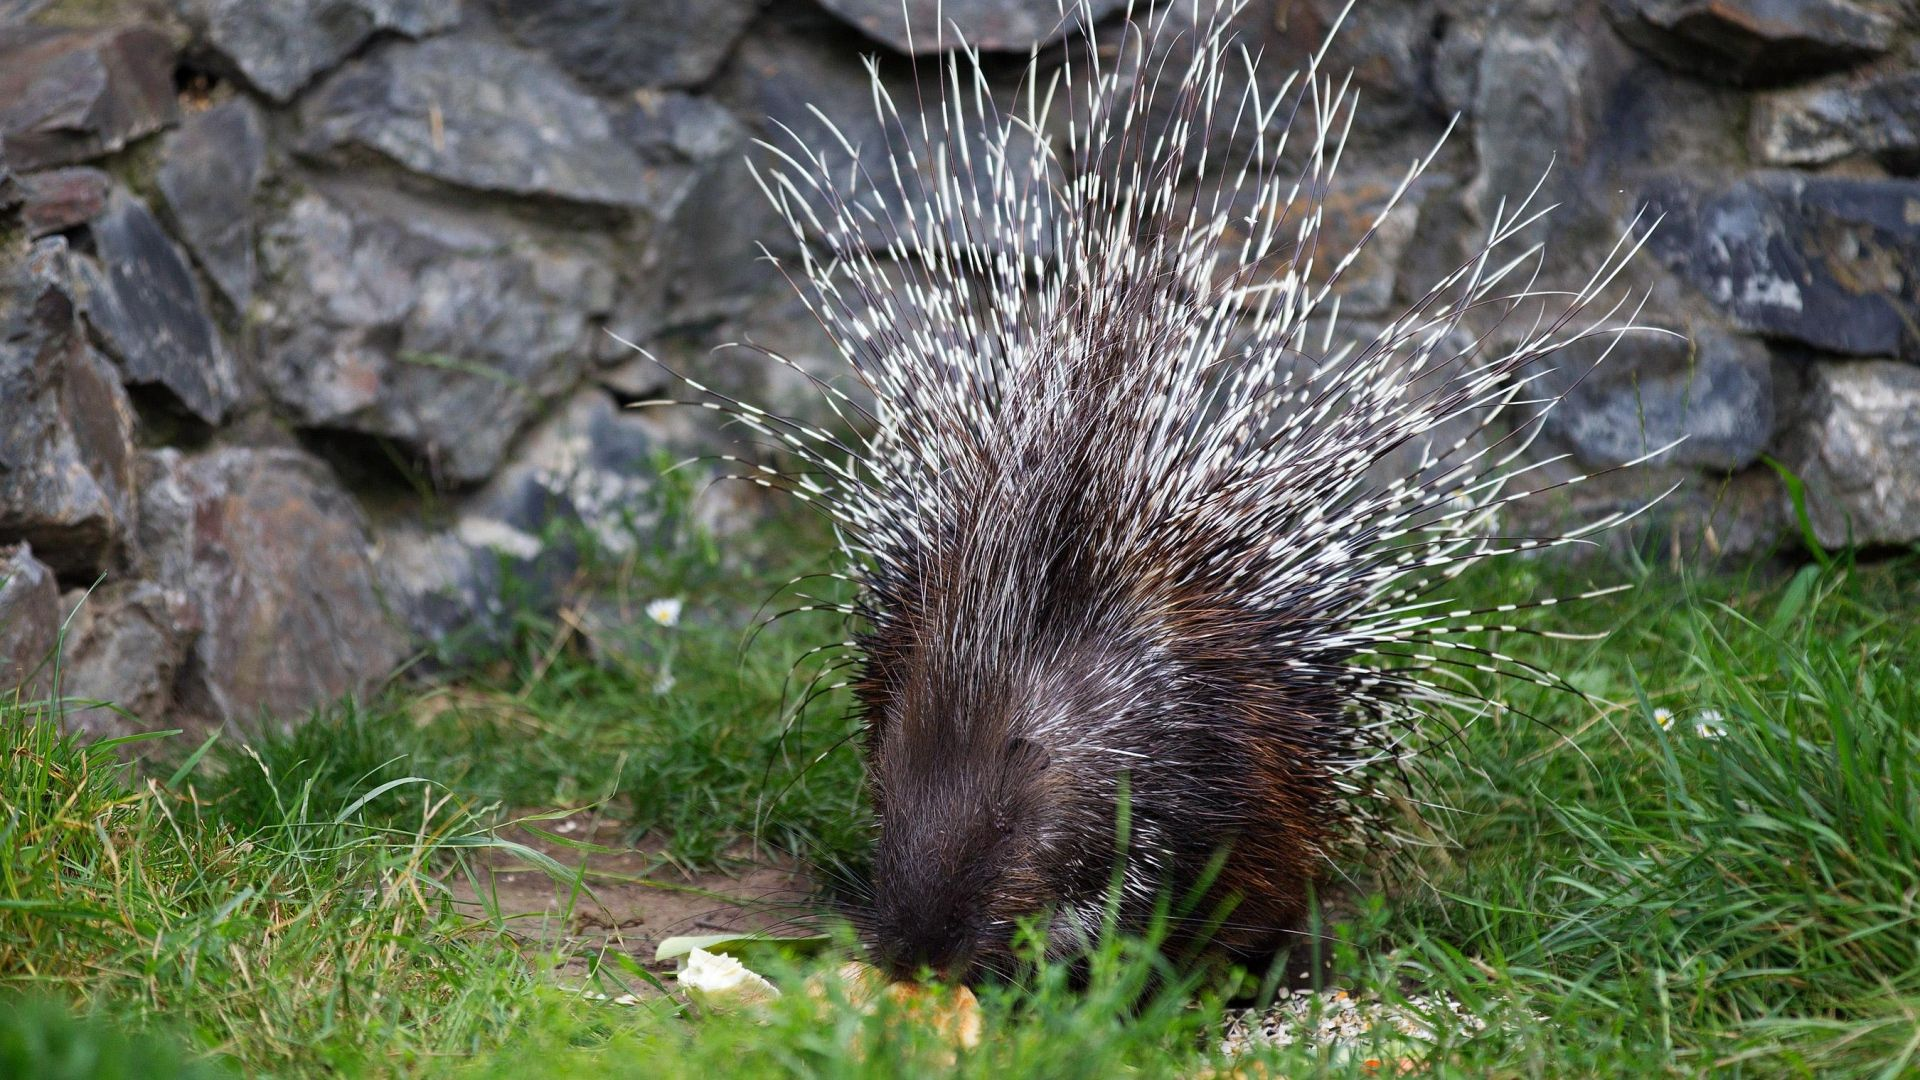 porcupine, food, thorns - http://www.wallpapers4u.org/porcupine-food-thorns/